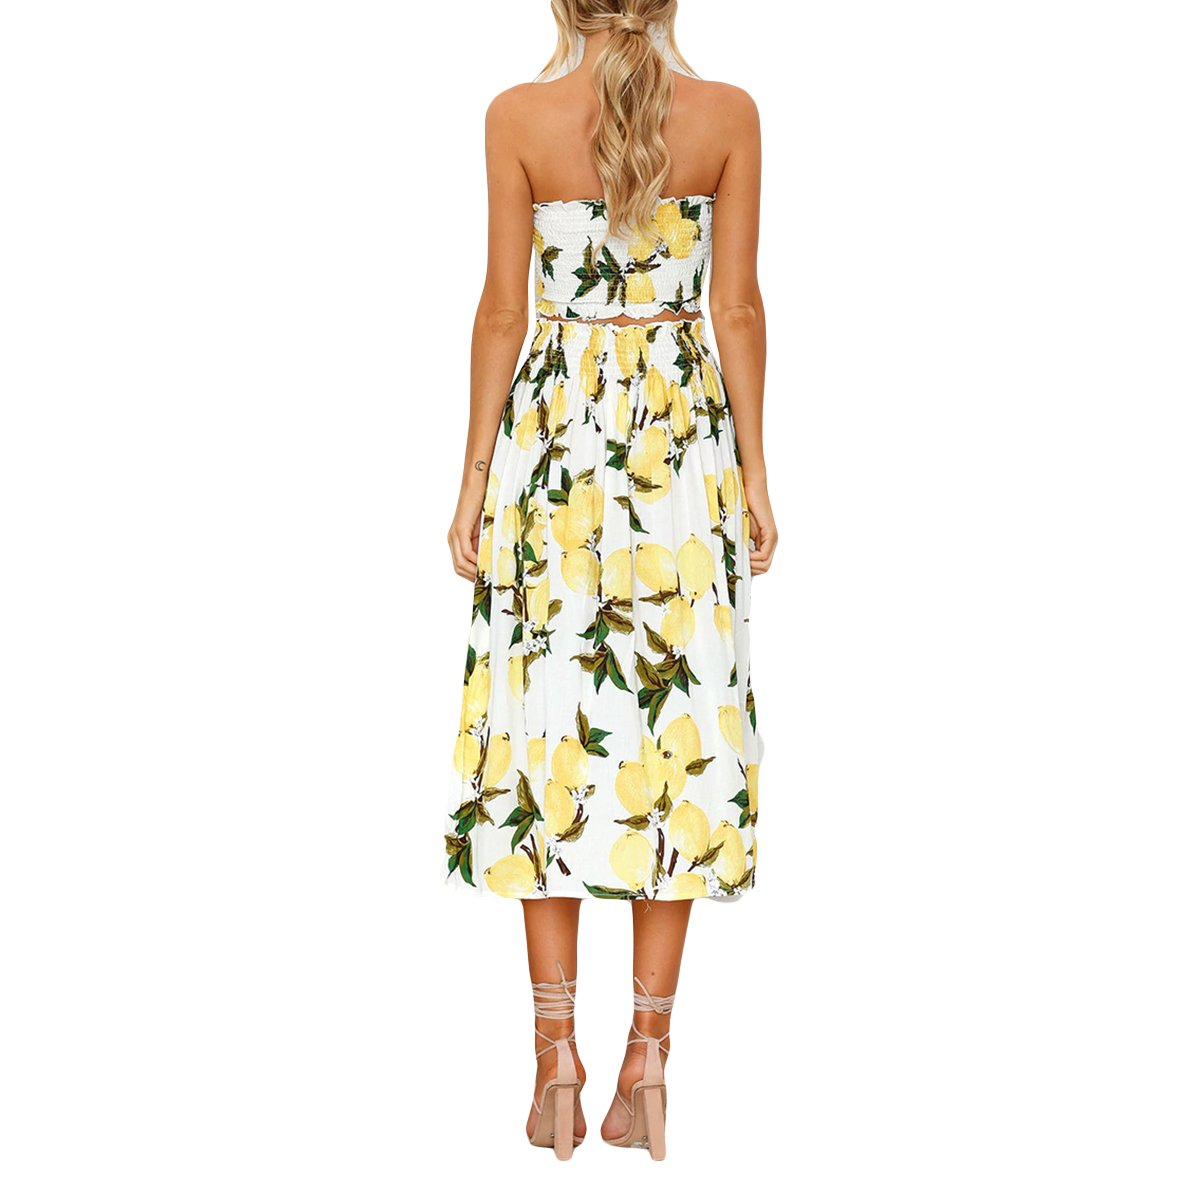 8f831052f6 Jahurto Women Floral Print Two Piece Crop Tube Top+High Waist Pleated Skirt  Set Outfit Size L (Lemon)  Amazon.co.uk  Clothing